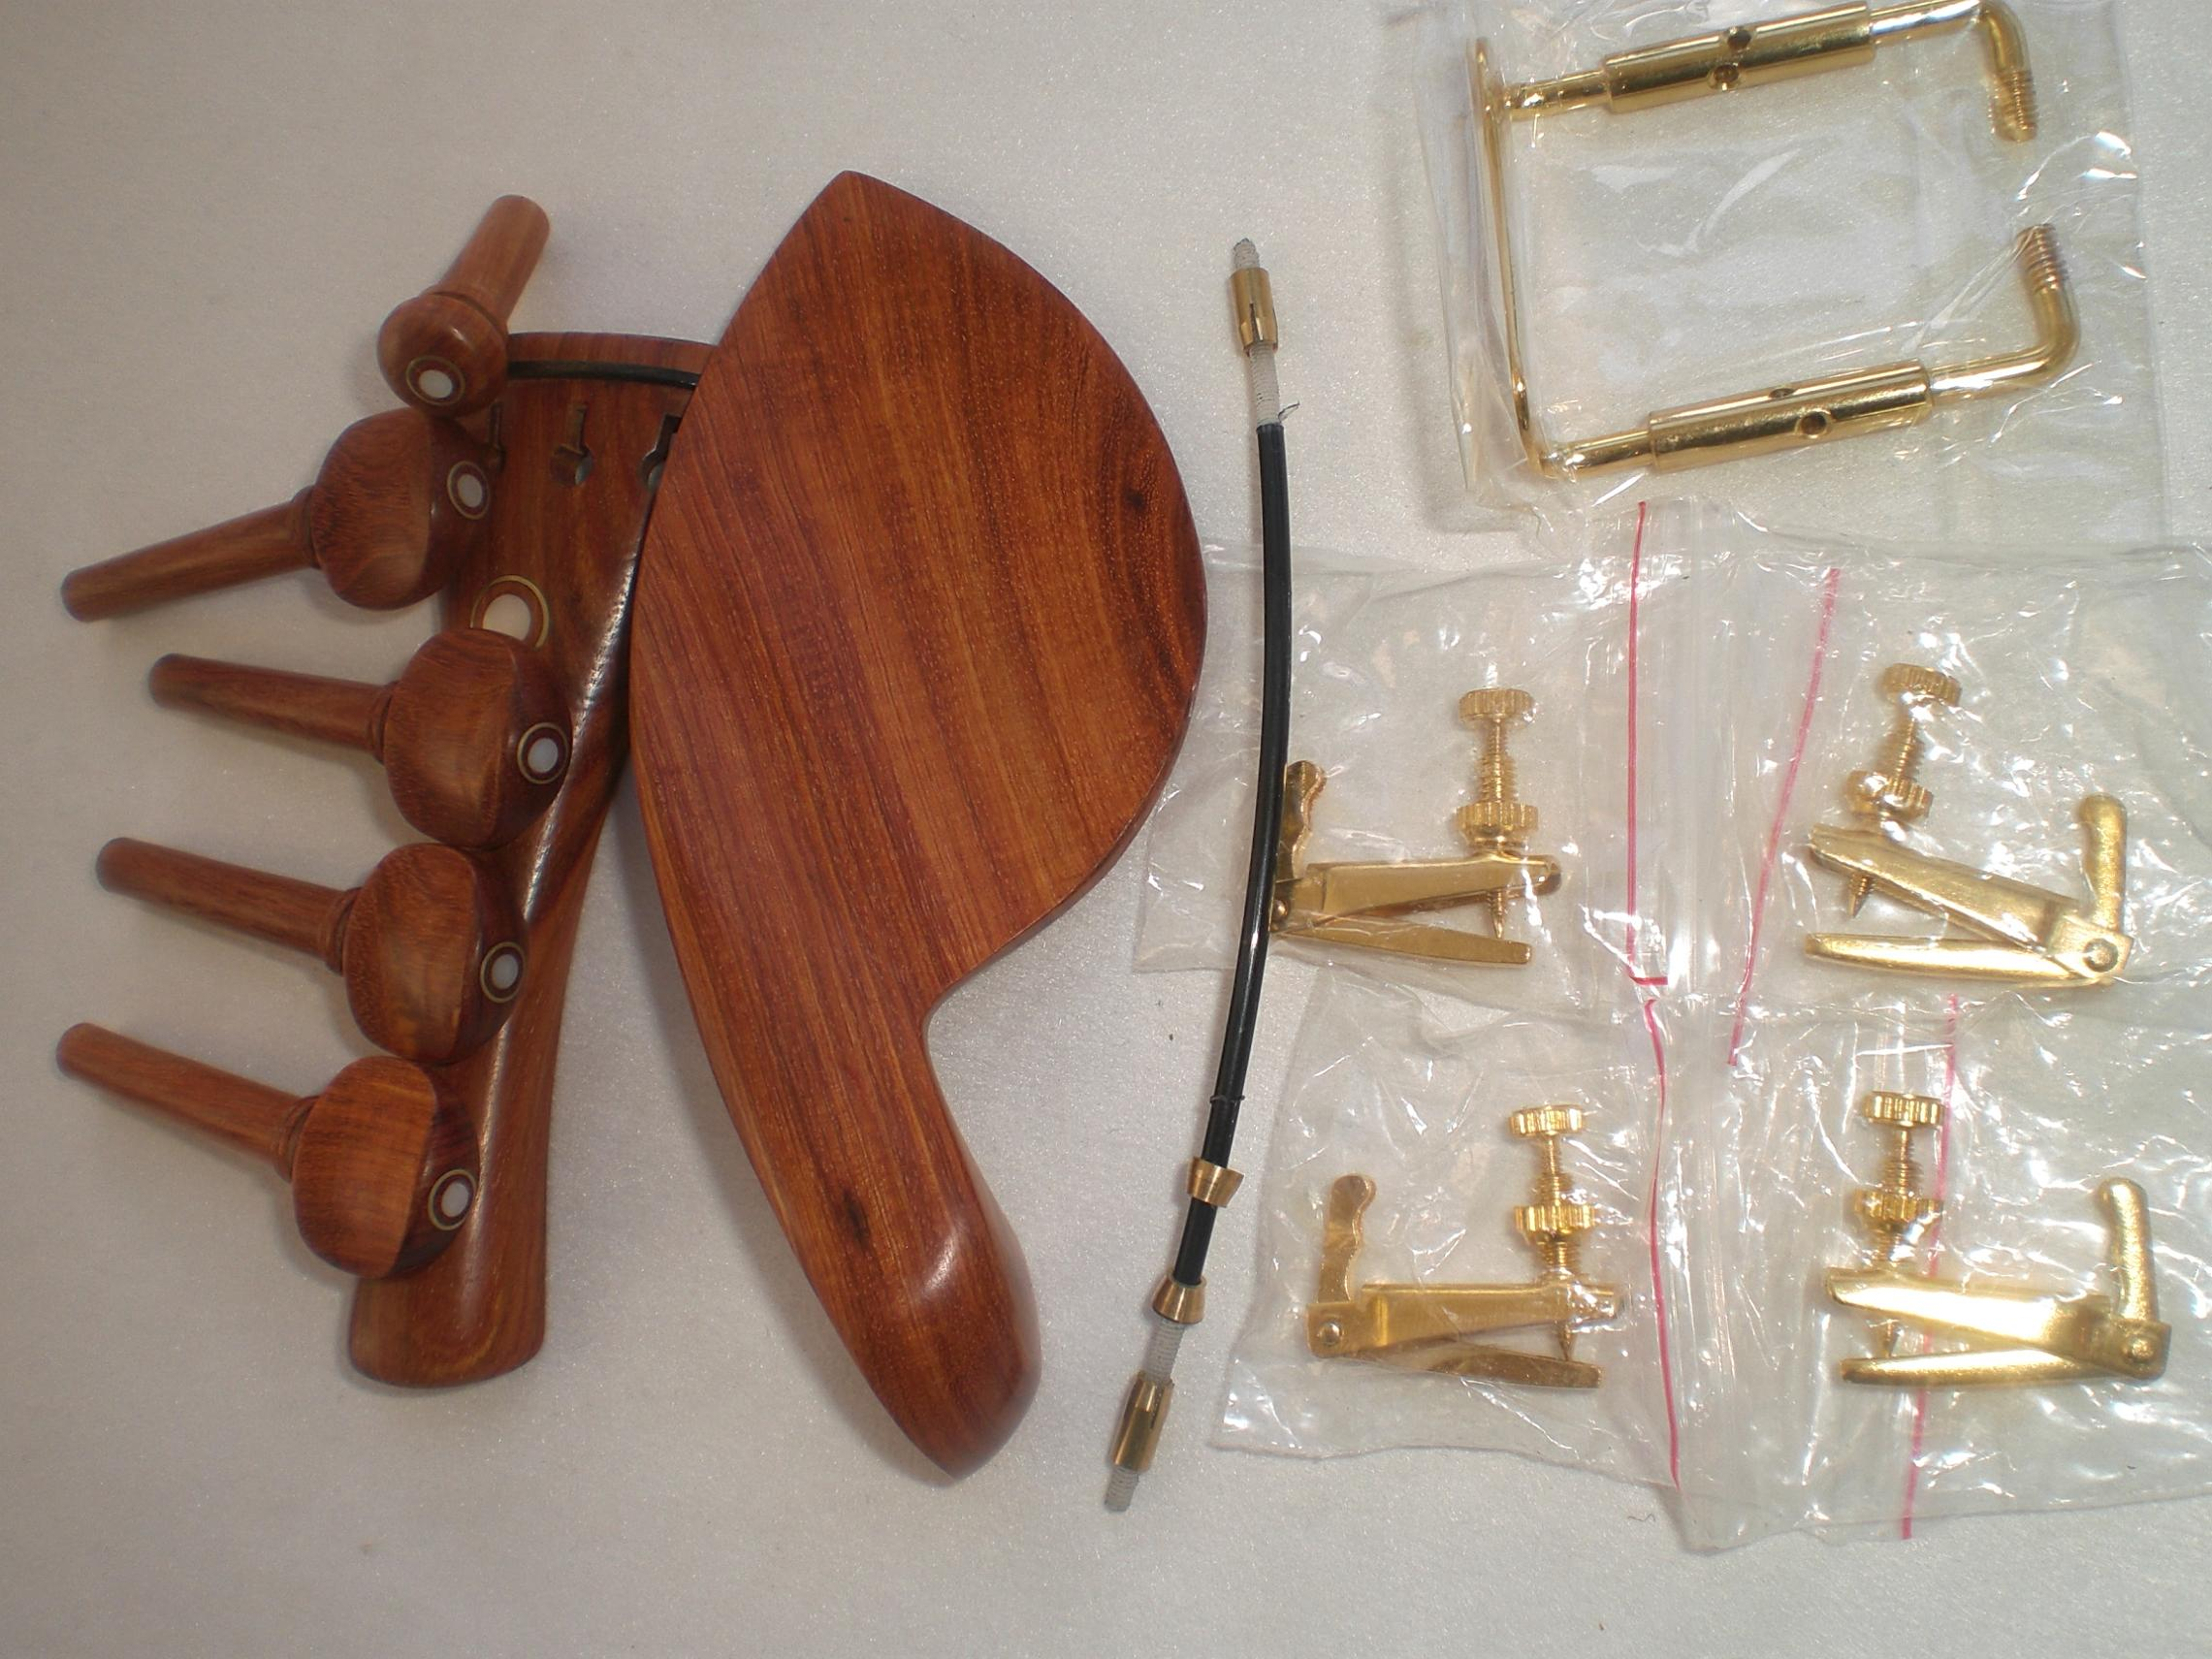 1 Set Rose Wood Fiddle Parts with Gold Color Chin Rest and 4 Violin Tuners & Nylon Tail Gut From 1/4 1/2 3/4 and 4/4|wood parts|violin partsviolin parts 4/4 - AliExpress